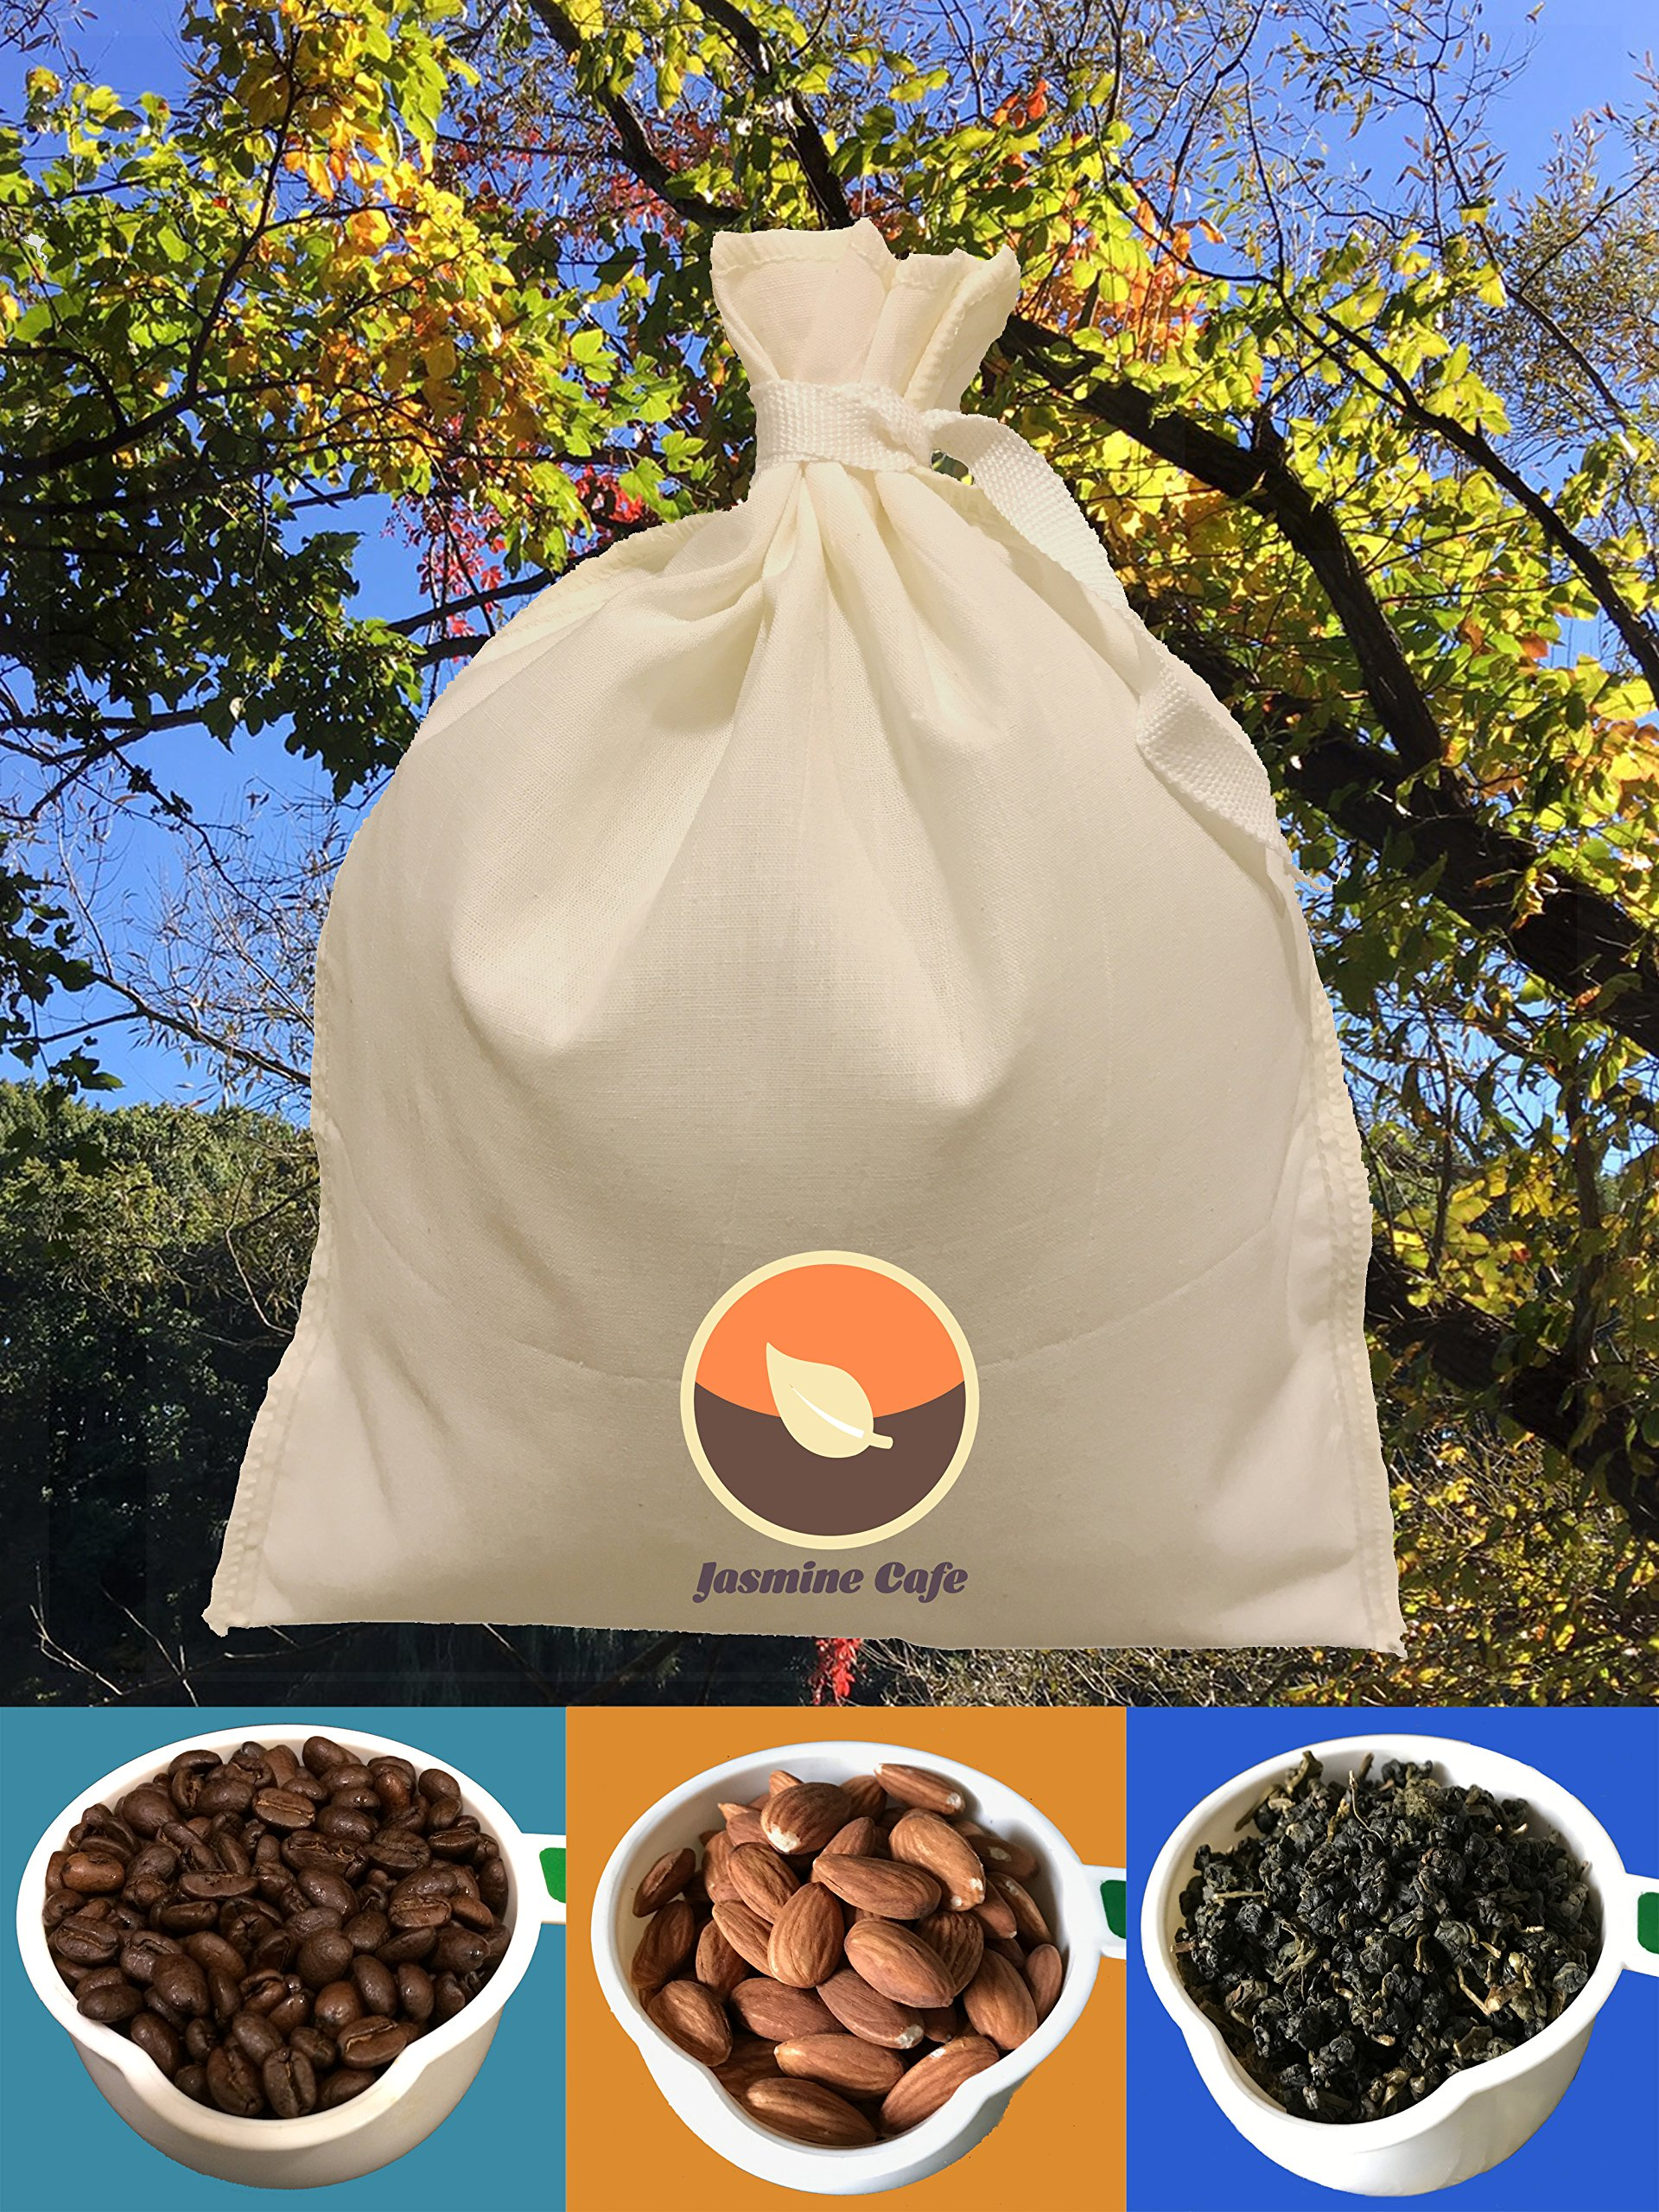 3 Pack (Large 11''x8'') Organic Cotton Nut Milk Bag & Cold Brew Coffee - Great Strainer for Coffee Tea & Nut Milk - Reusable & Eco-Friendly - 100% Safe to Use - Good for Commercial and Household by Jasmine Café (Image #3)